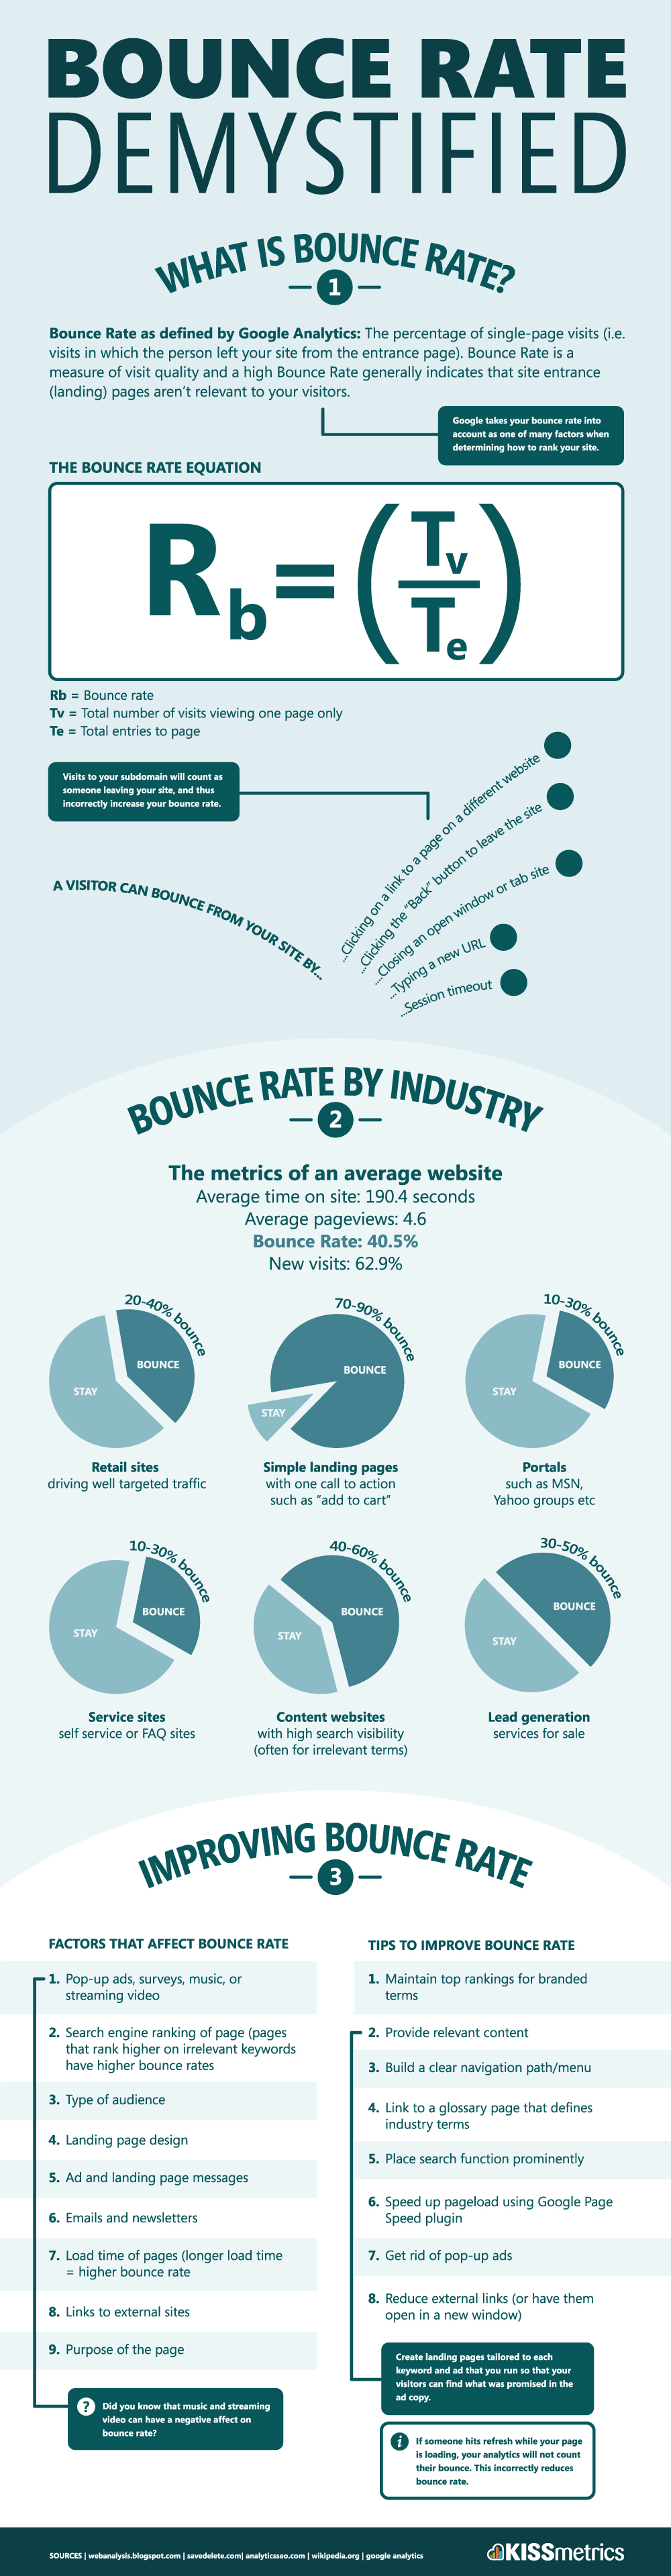 Bounce Rate Demystifed